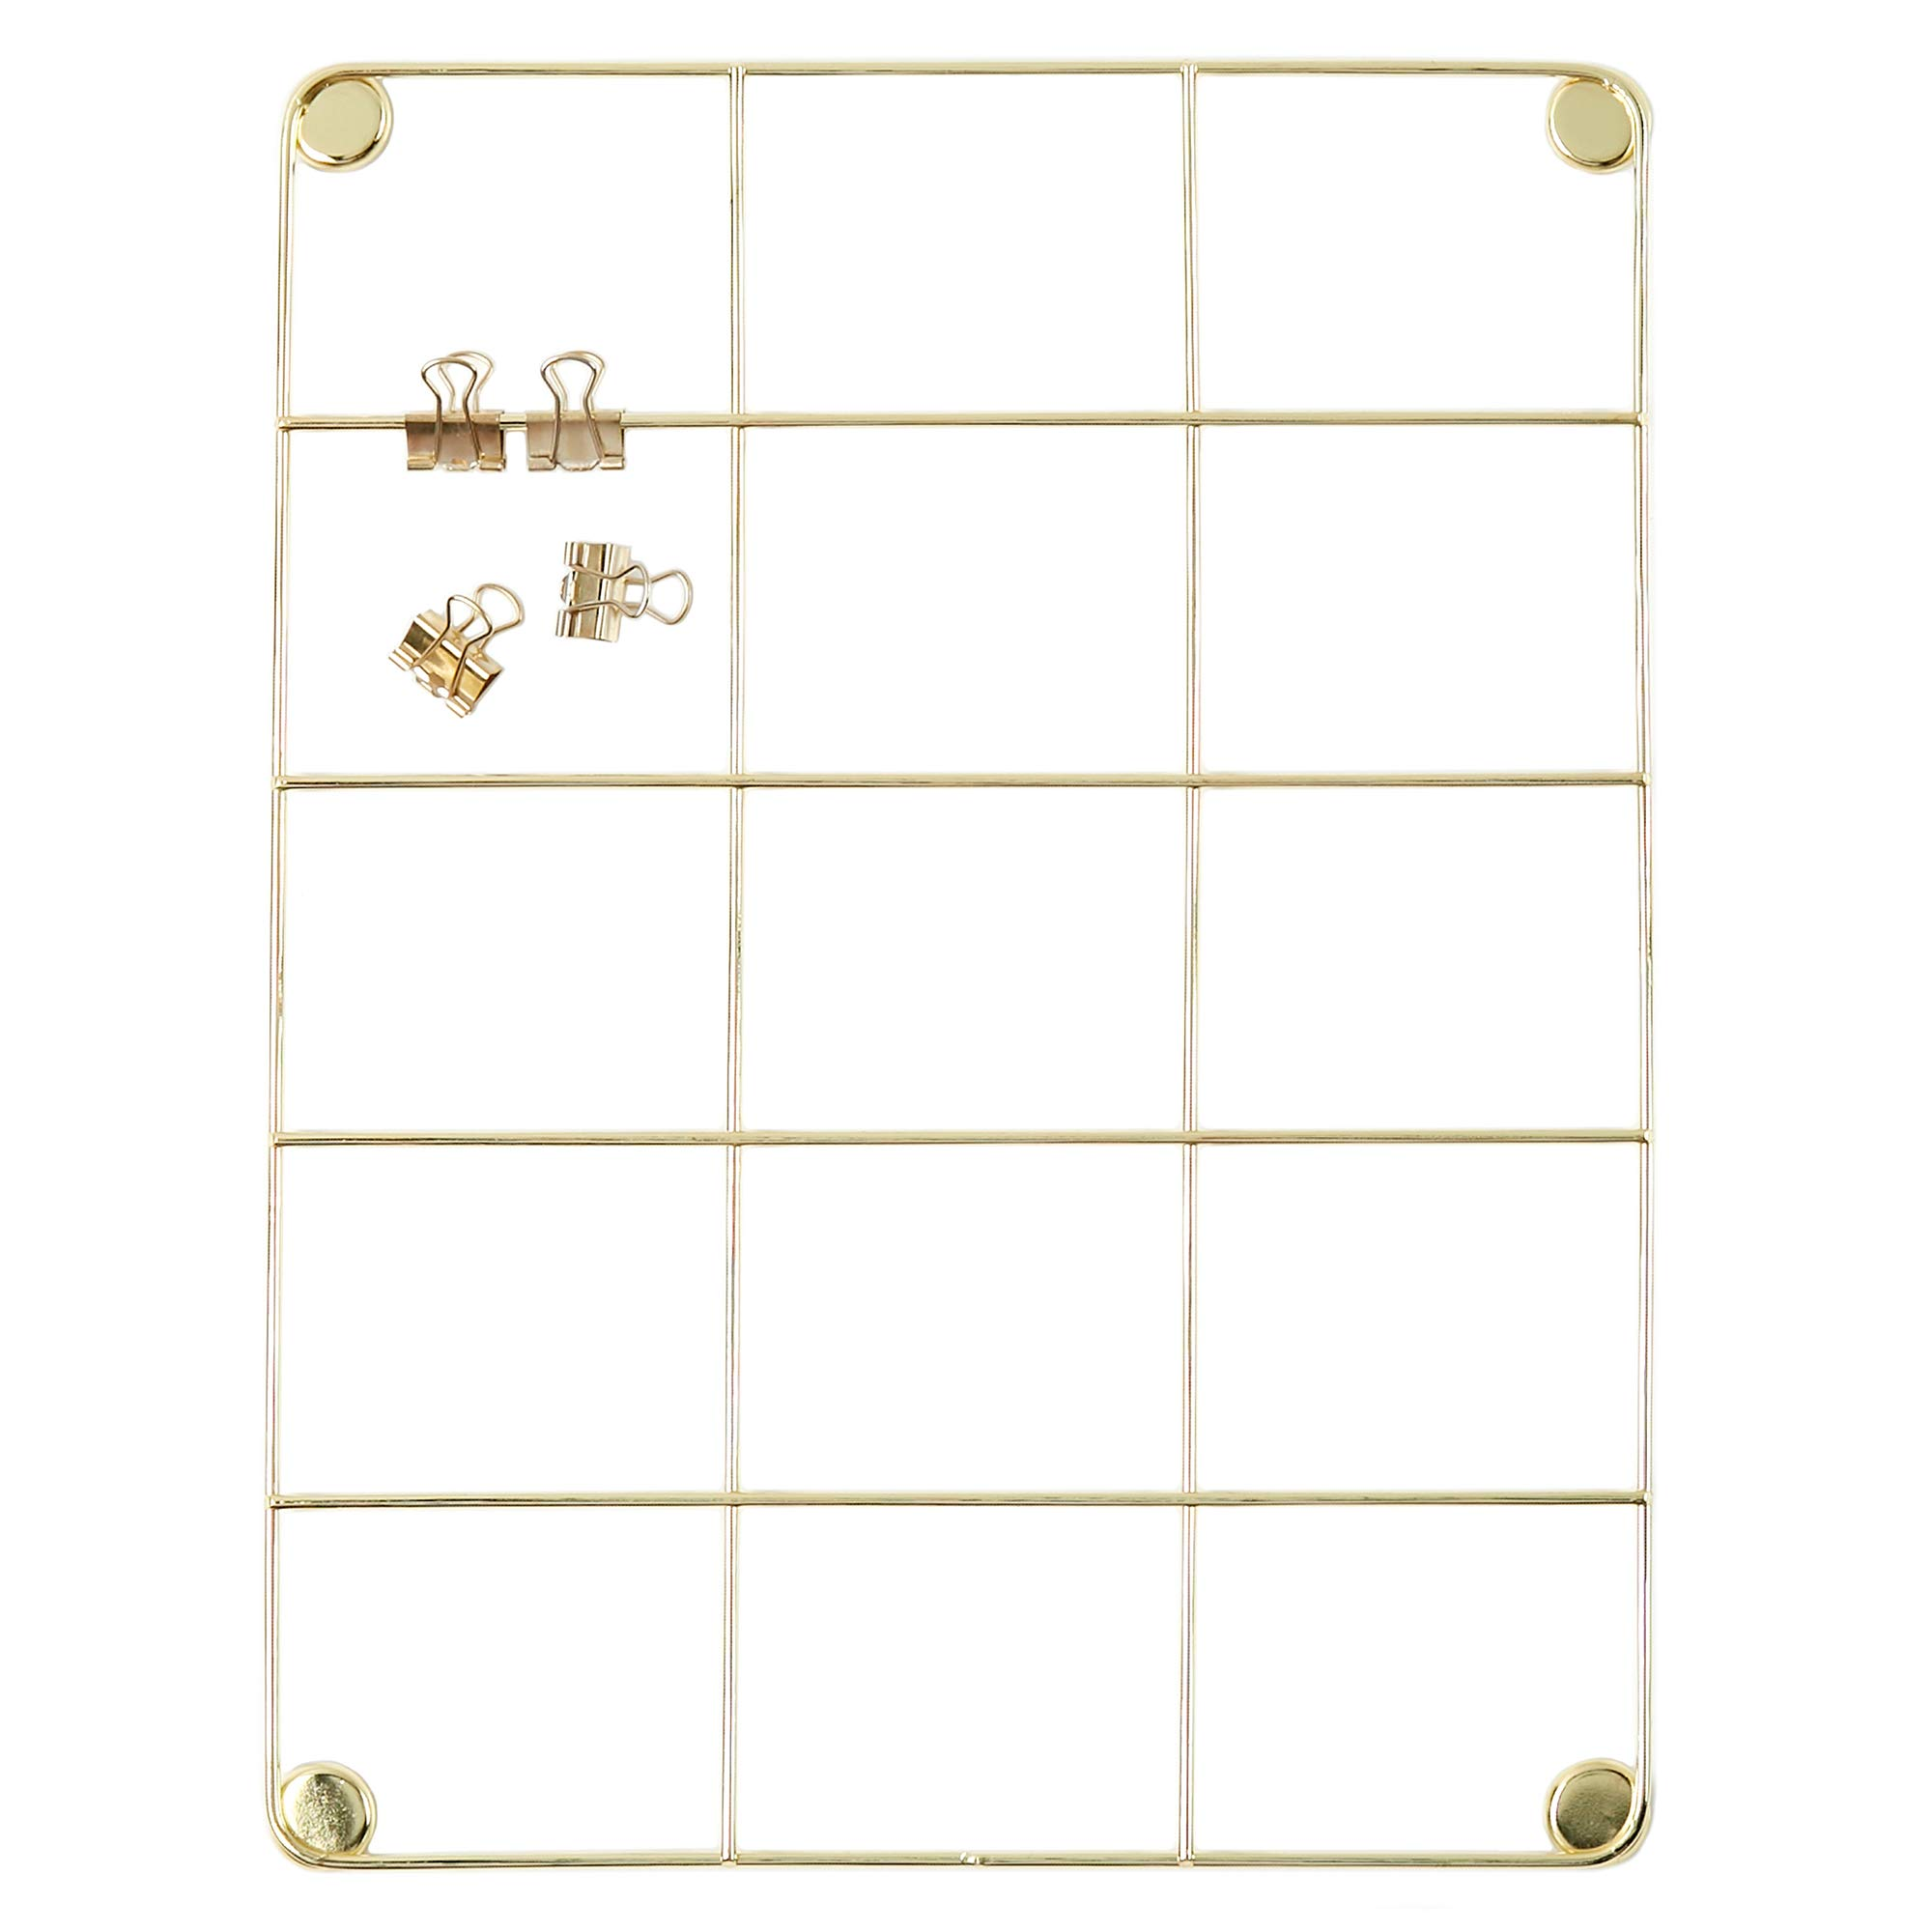 Wall Display and Planning Grid Files and Memo Sheets Mesh Organizing Board of Workspace and Home Office for Hanging Pictures Rose Gold, 17.7 x 25.6 Metal Wire Tool and Stationery Storage Panel